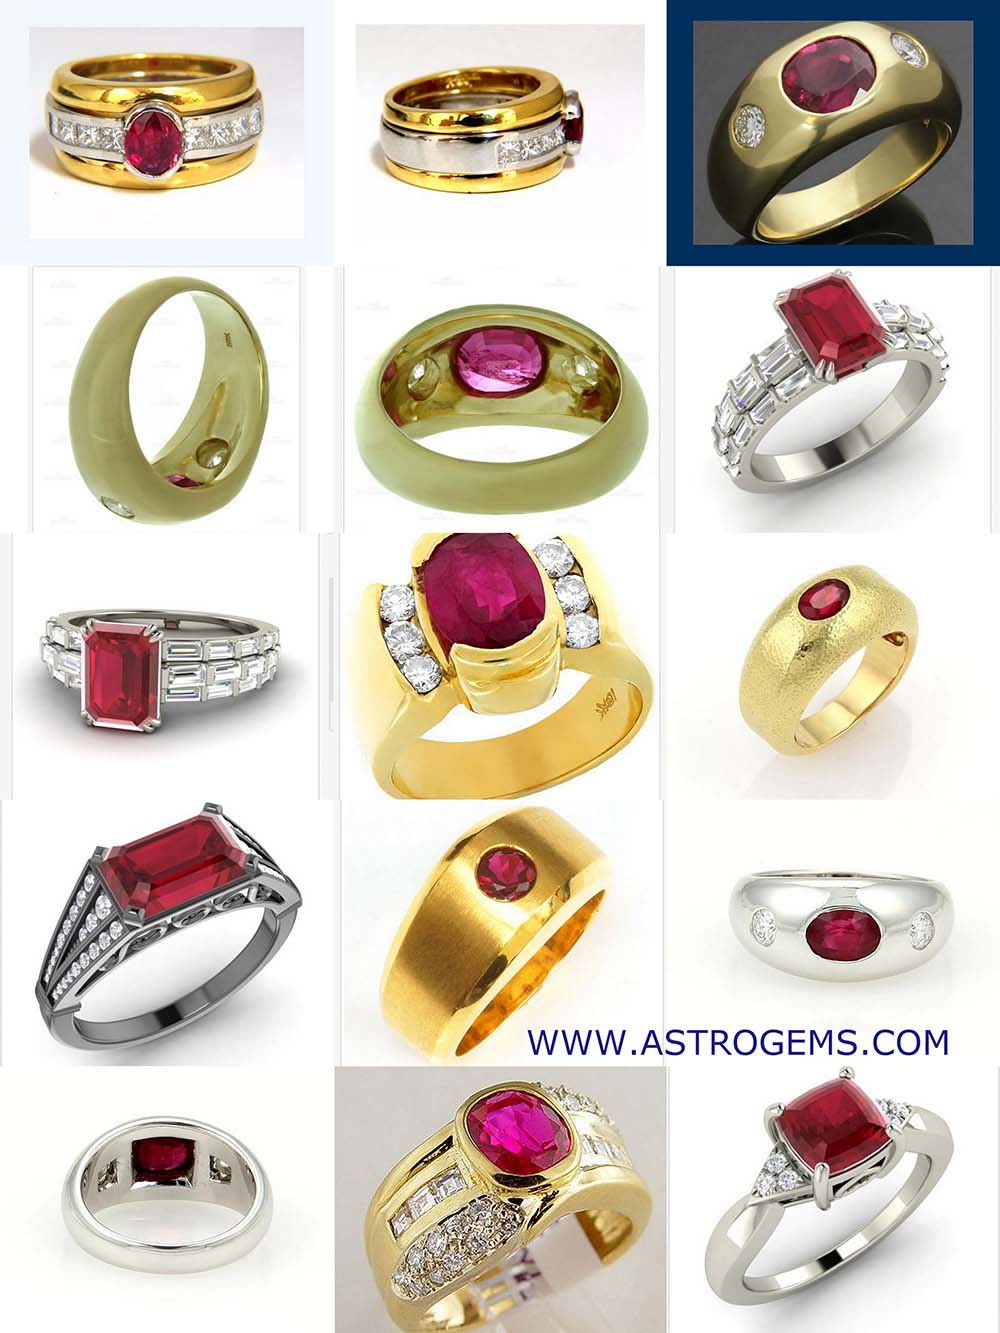 Astrogems can make custom astrological Ruby rings.